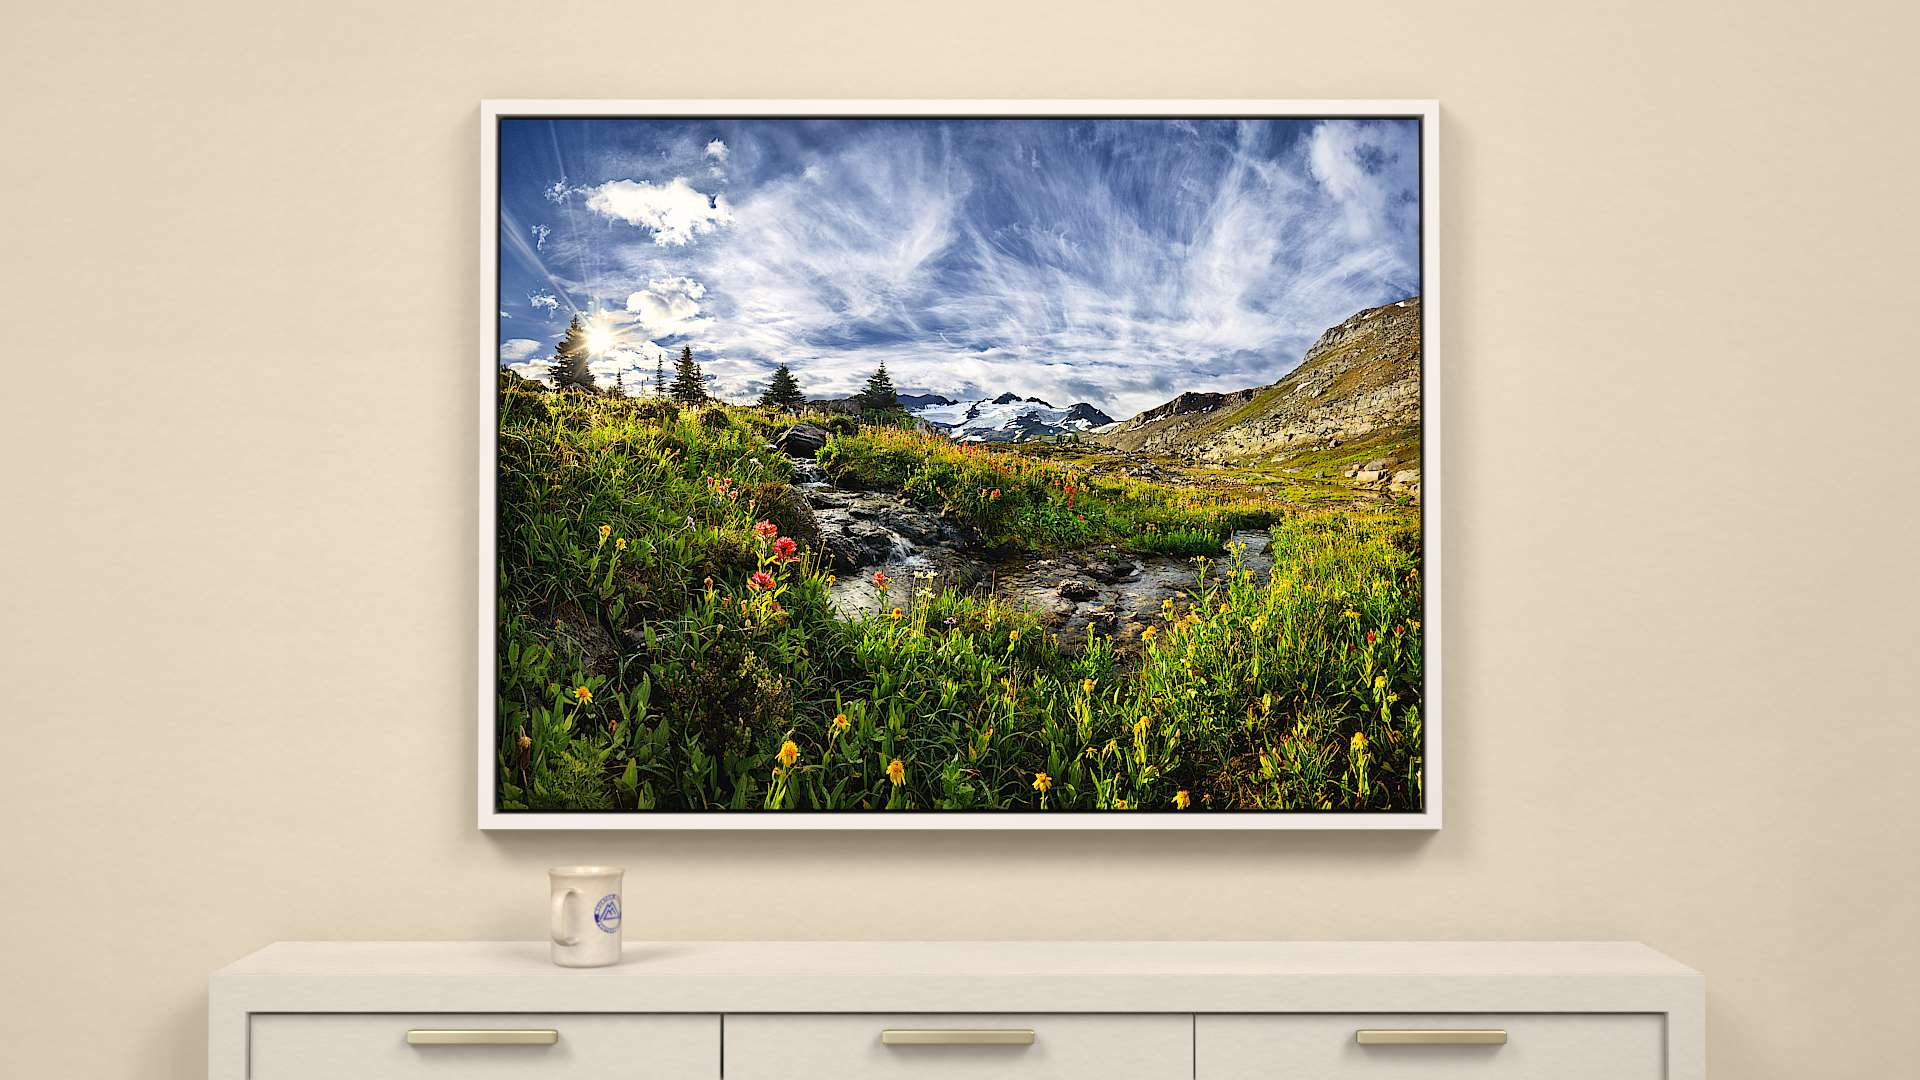 Singing Stream, Silent Mountain Canvas Wall Art